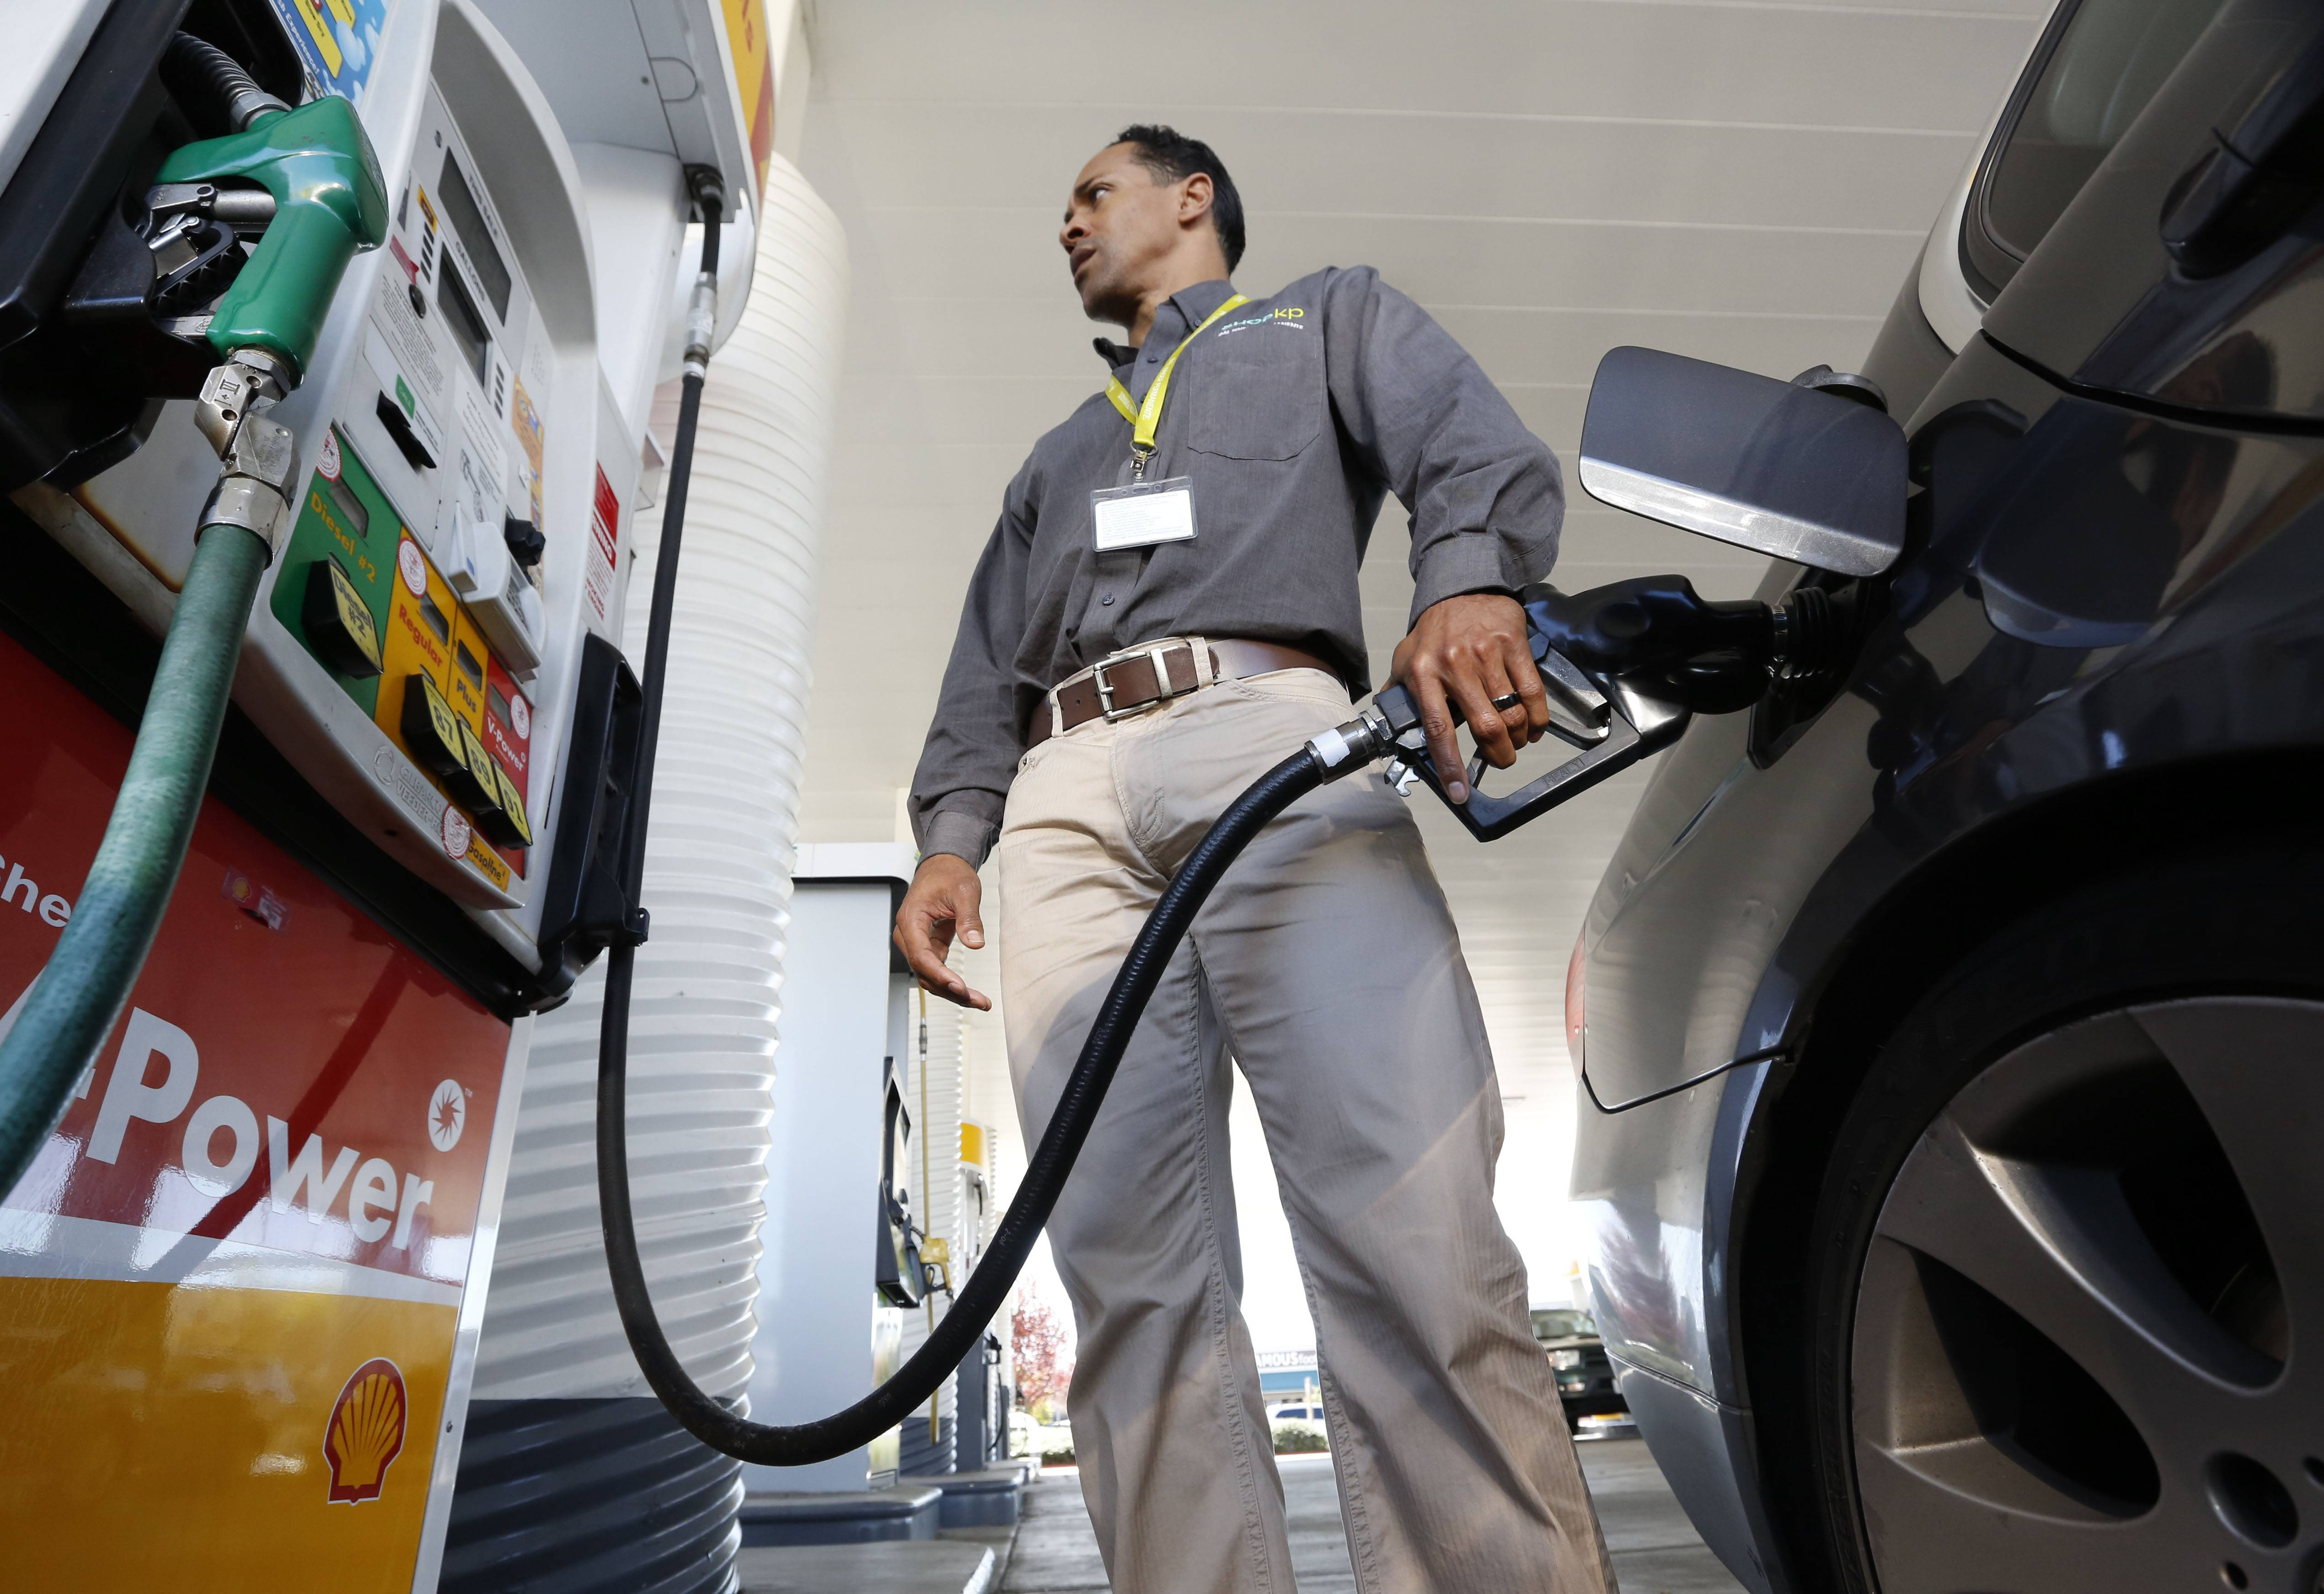 Drivers will get the slightest of breaks on gasoline prices this summer, according to the Energy Department. The national average price is forecast to fall — by just one cent — to $3.57 per gallon between April and September, the months when Americans do most of their driving.